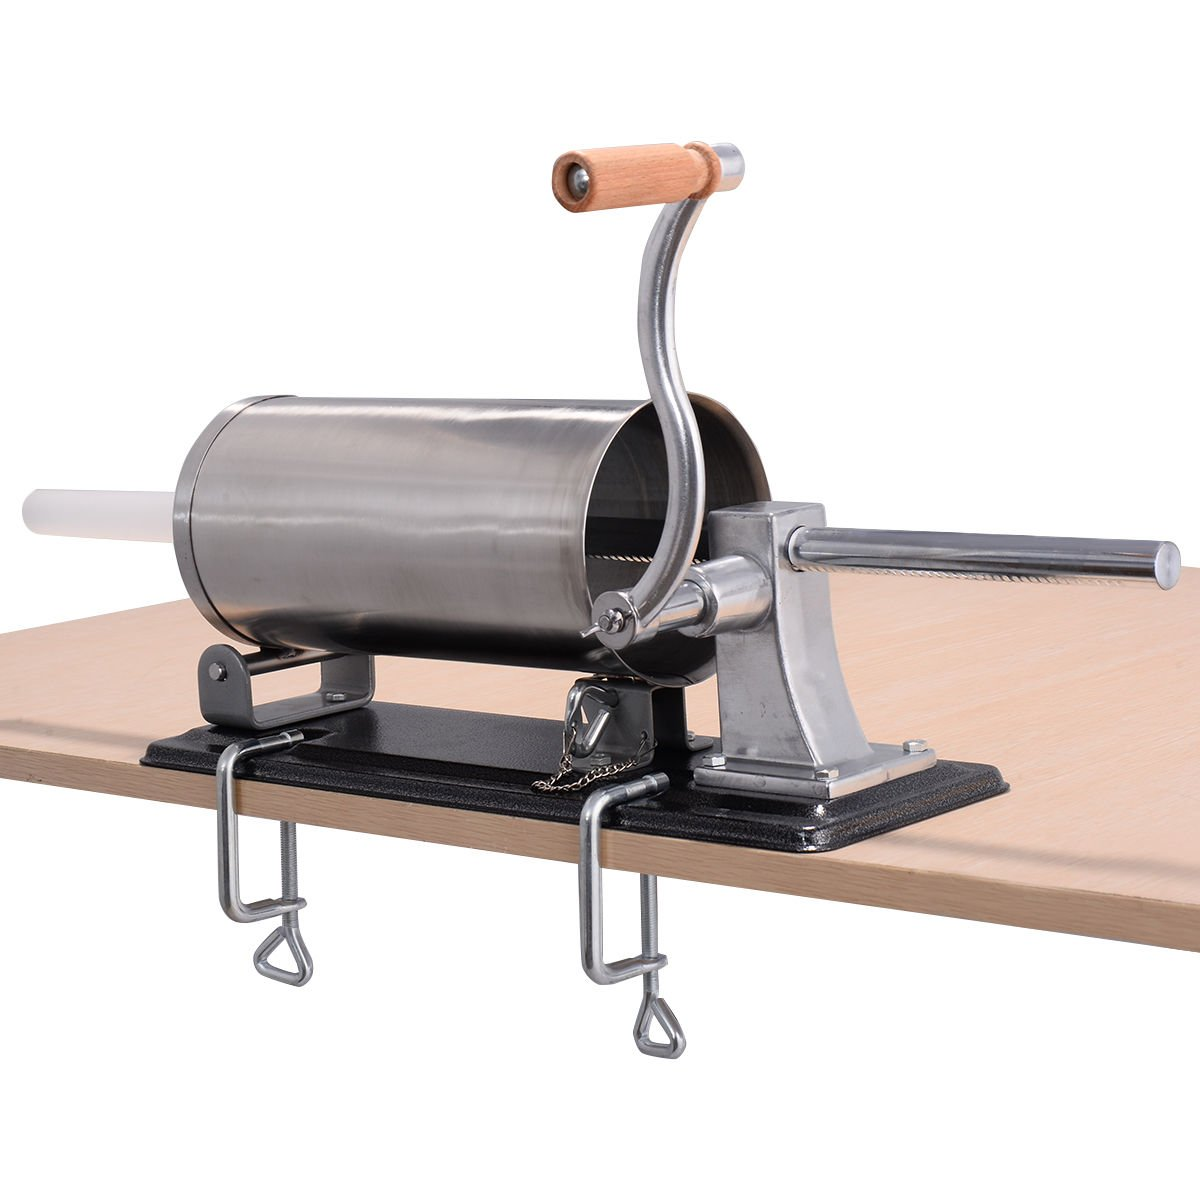 New 4.8L Sausage Stuffer Maker Meat Filler Machine Stainless Steel Commercial